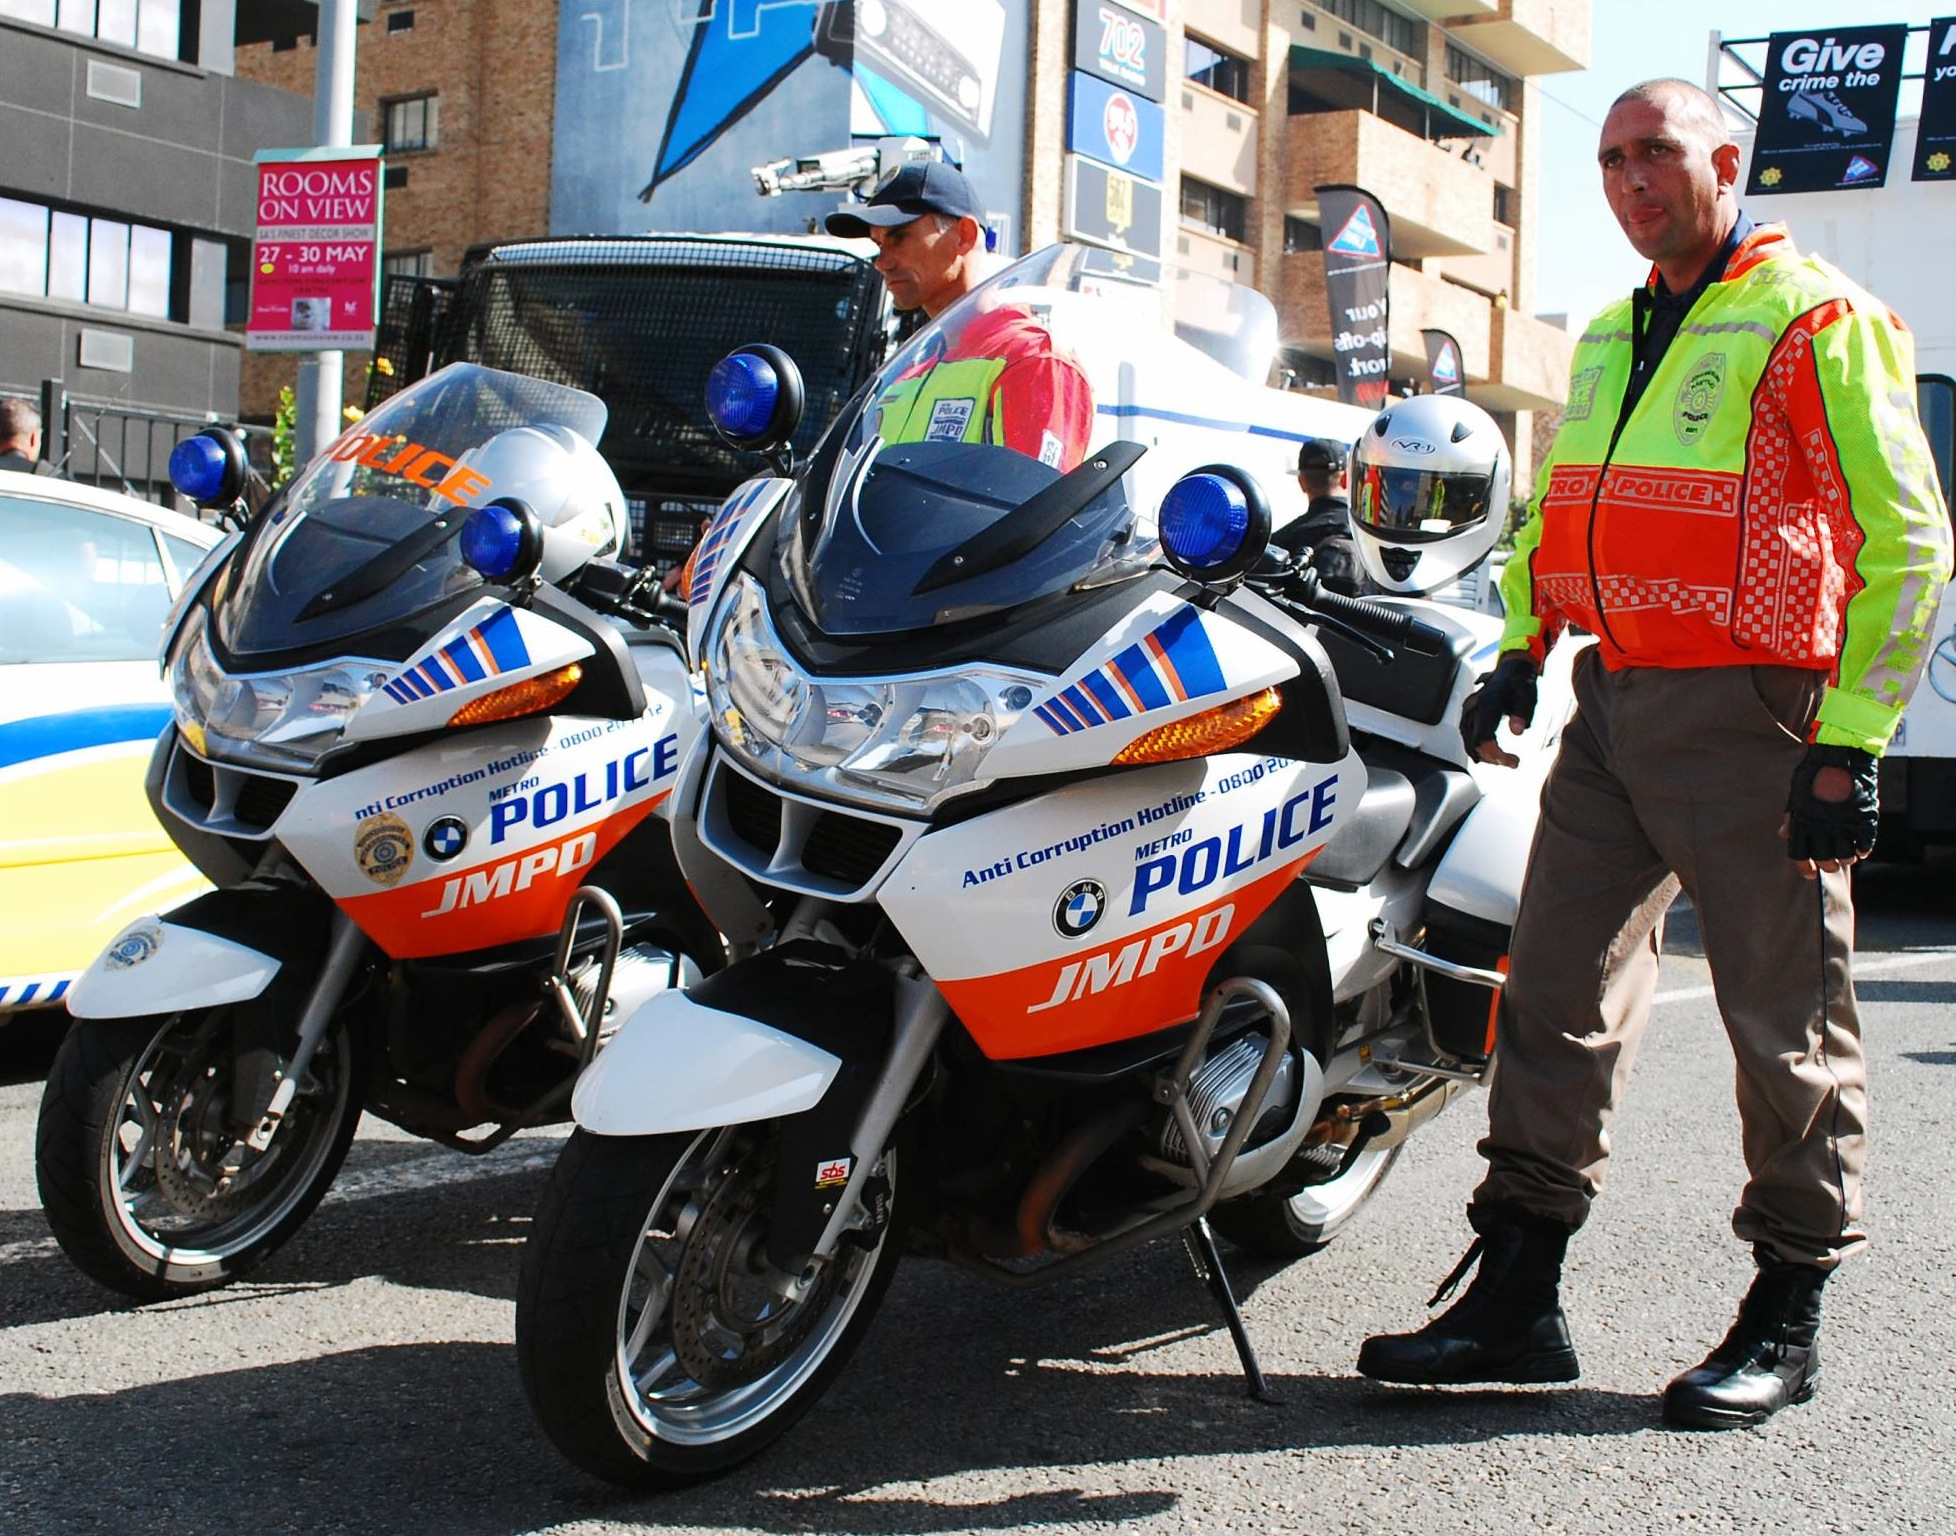 file:police with motorcycles in south africa - wikimedia commons